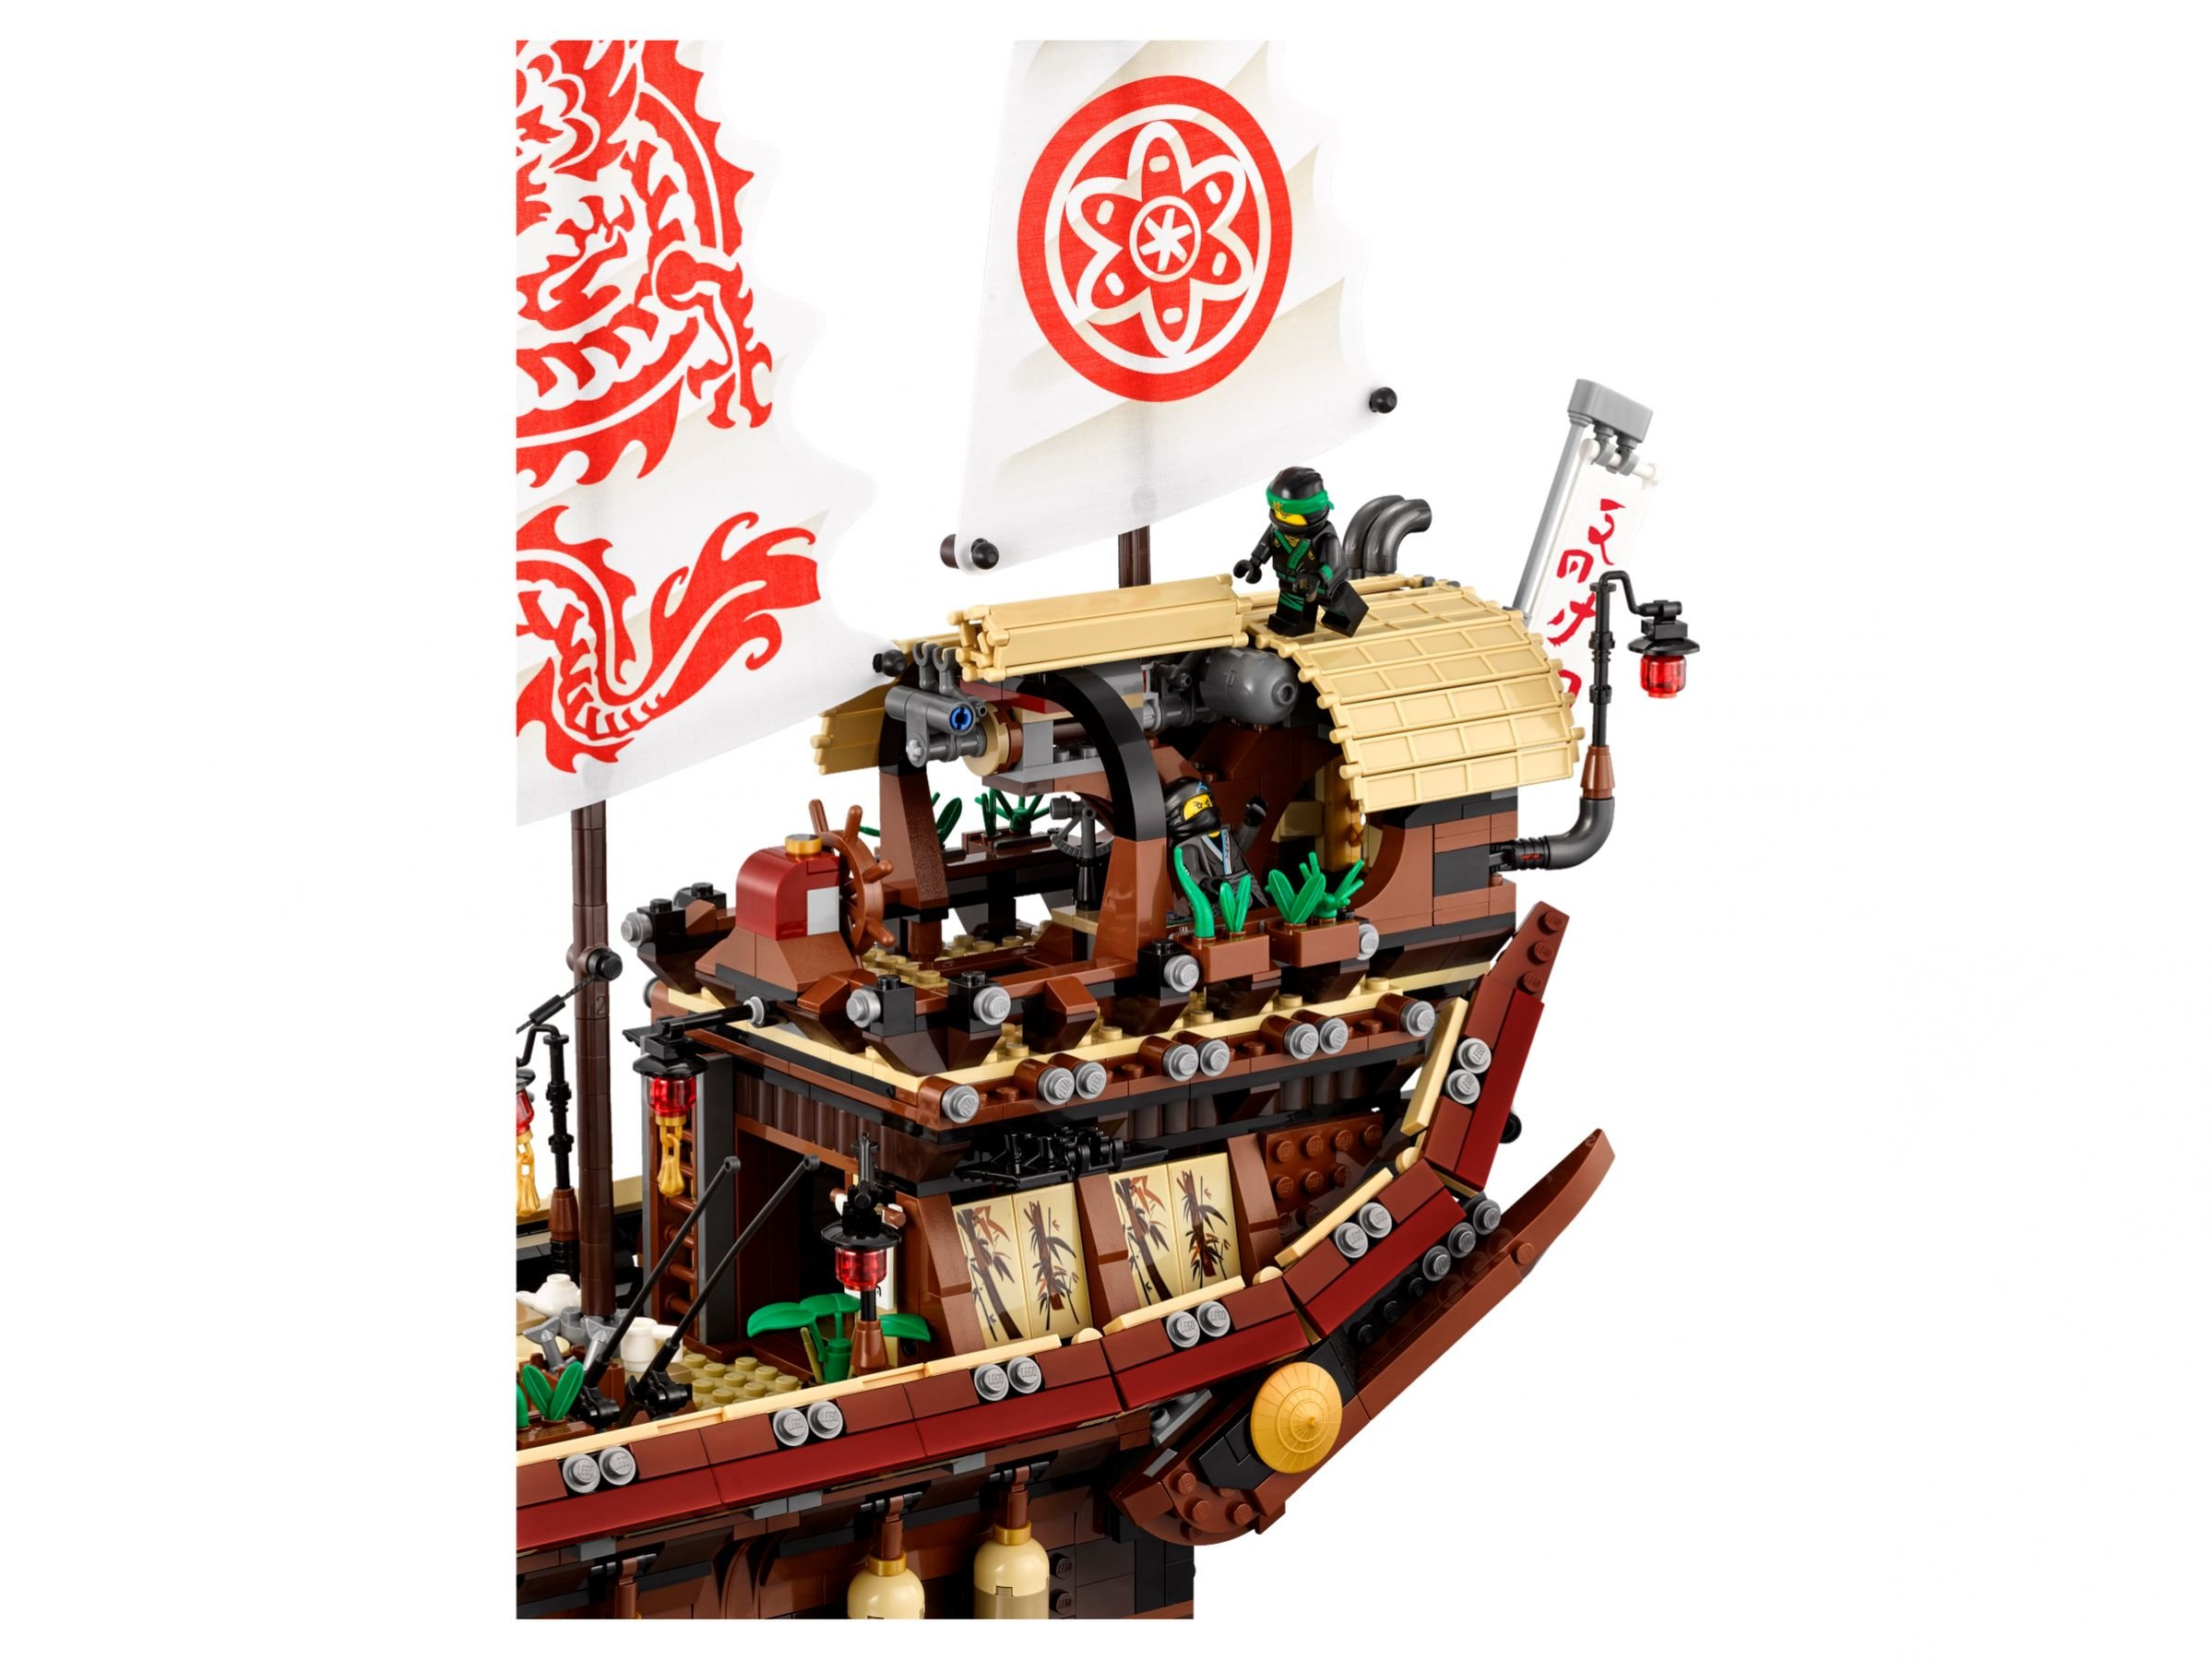 LEGO The LEGO Ninjago Movie 70618 Ninja-Flugsegler LEGO_70618_alt3.jpg